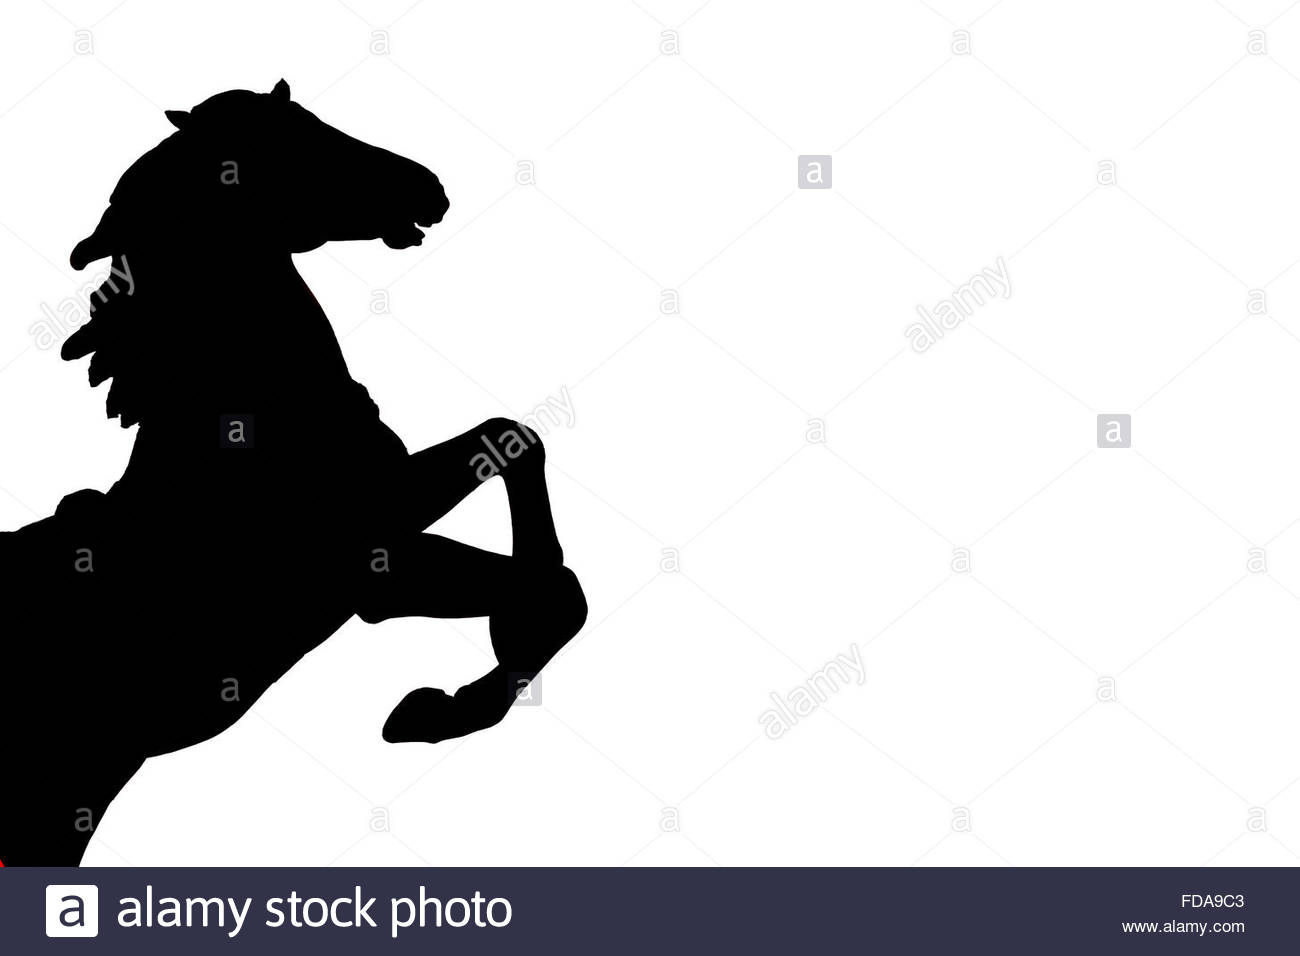 Rearing Black Horse Silhouette On White Background Digitally Created Stock Photo Alamy